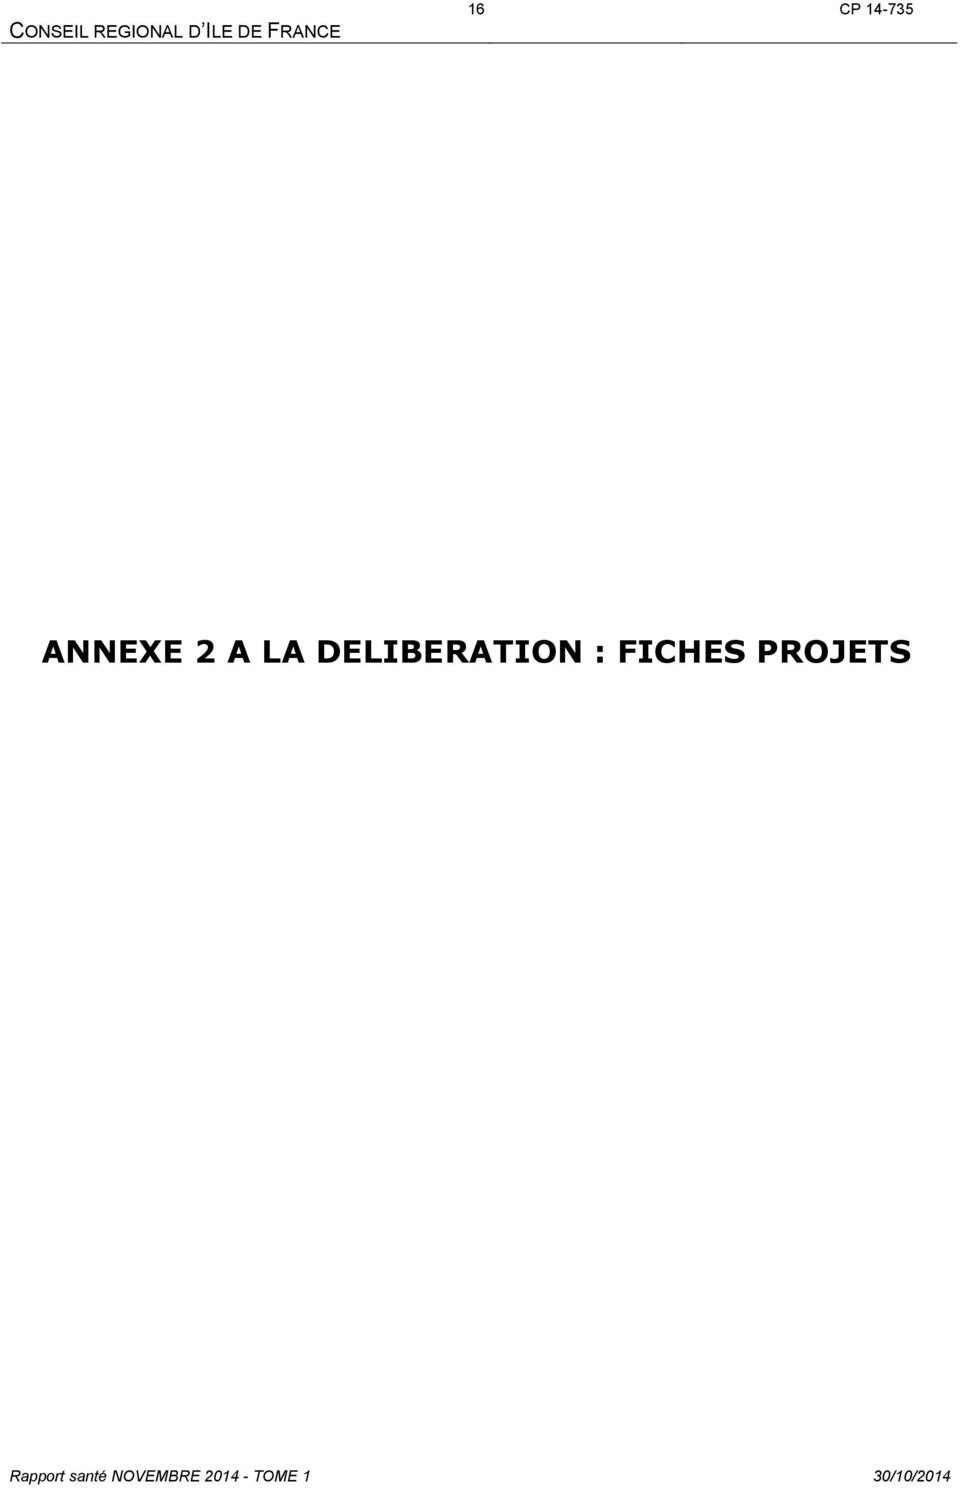 DELIBERATION : FICHES PROJETS